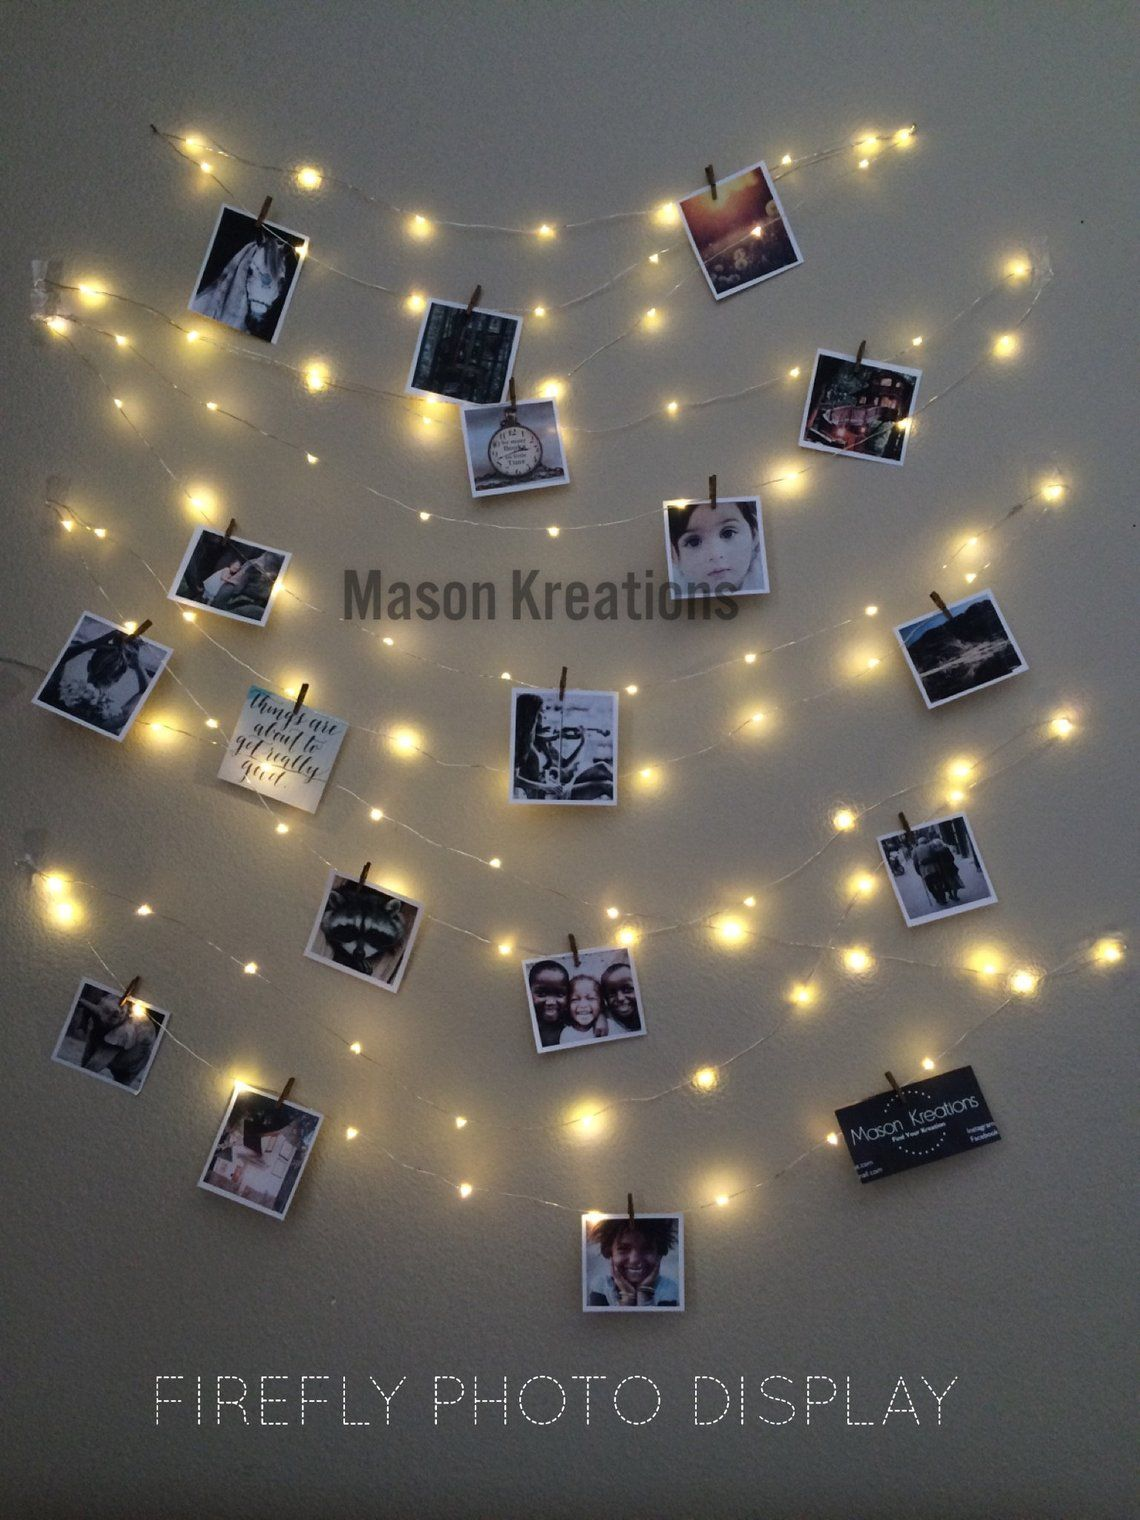 37+ Fairy lights hanging photos ideas in 2021